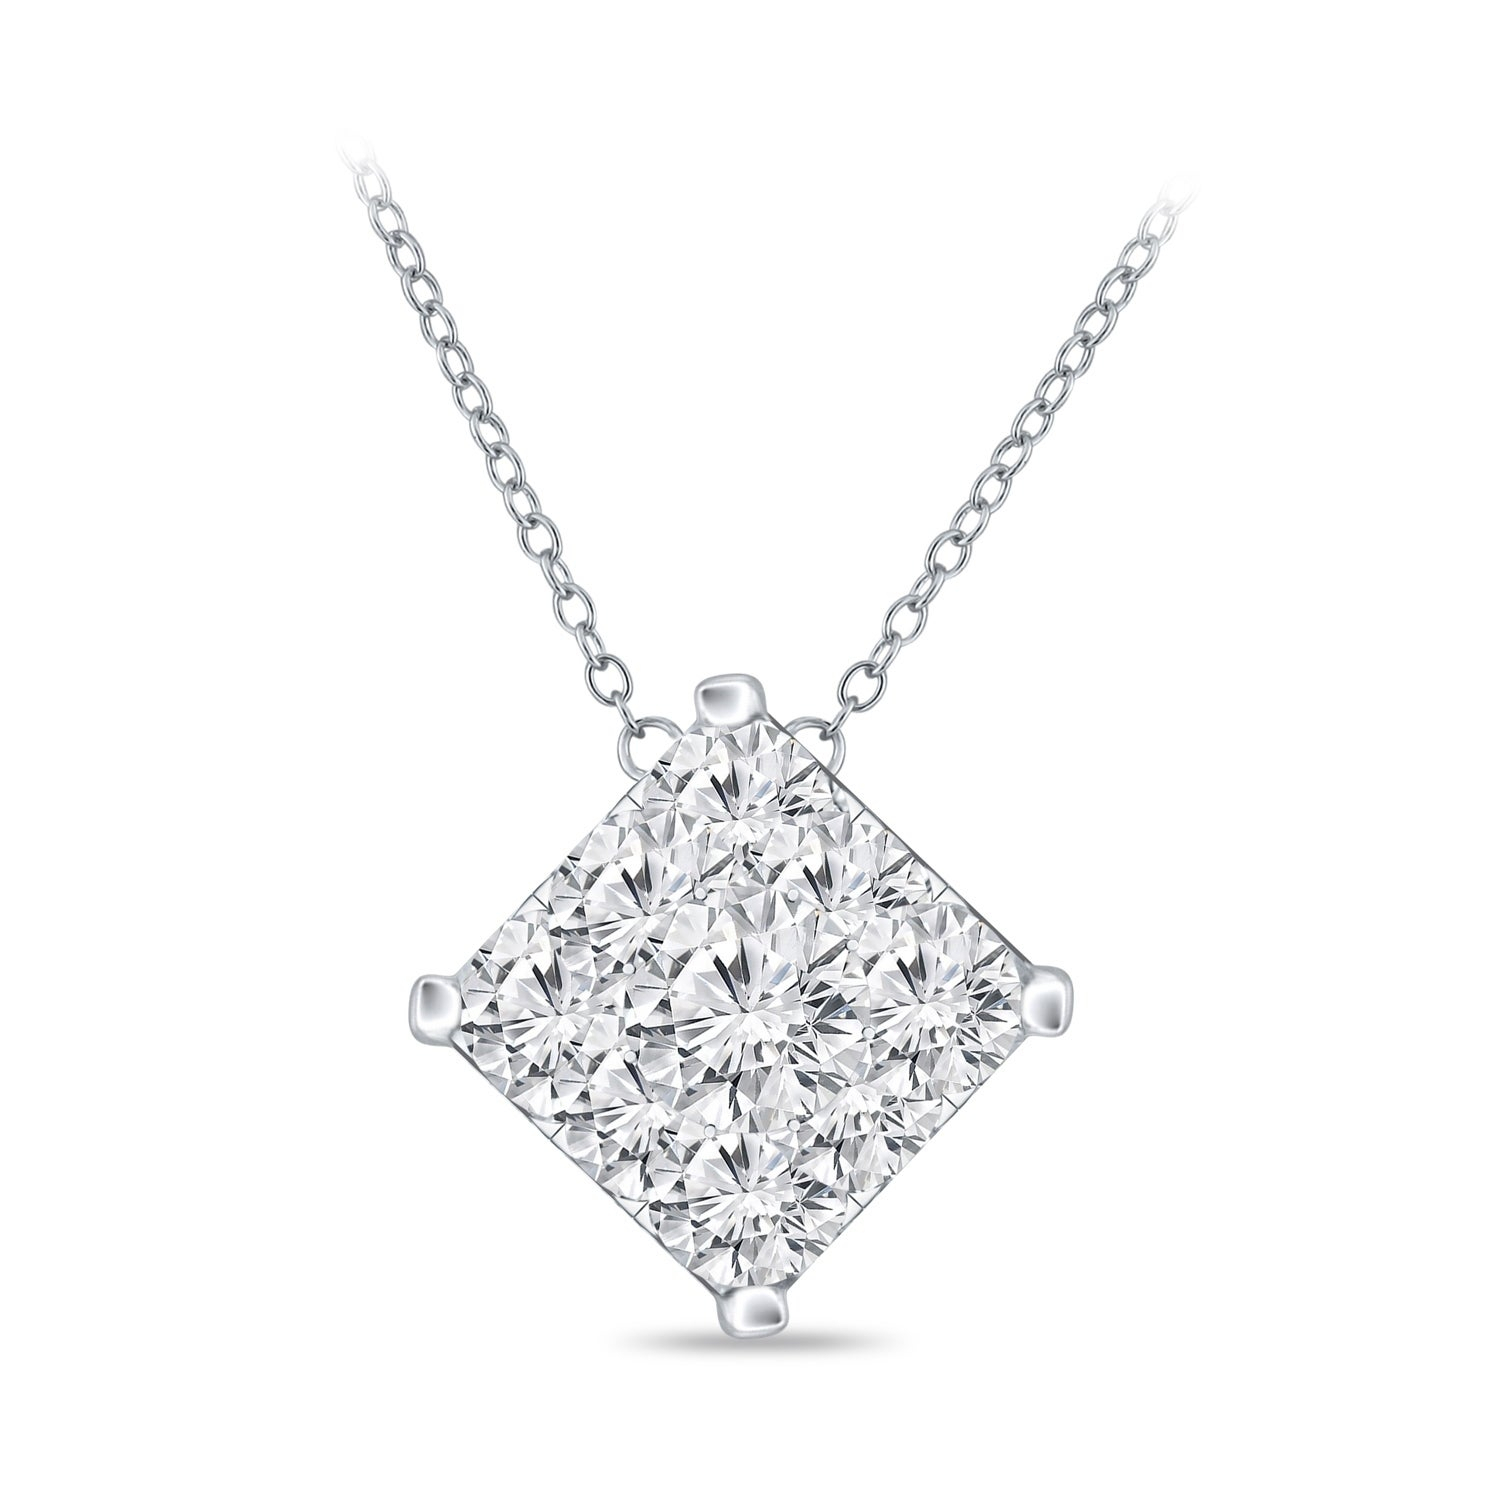 14K Gold Square Shaped 1/2Ct Tdw Pave Diamond Necklaceauriya Regarding 2019 Square Sparkle Halo Necklaces (View 4 of 25)